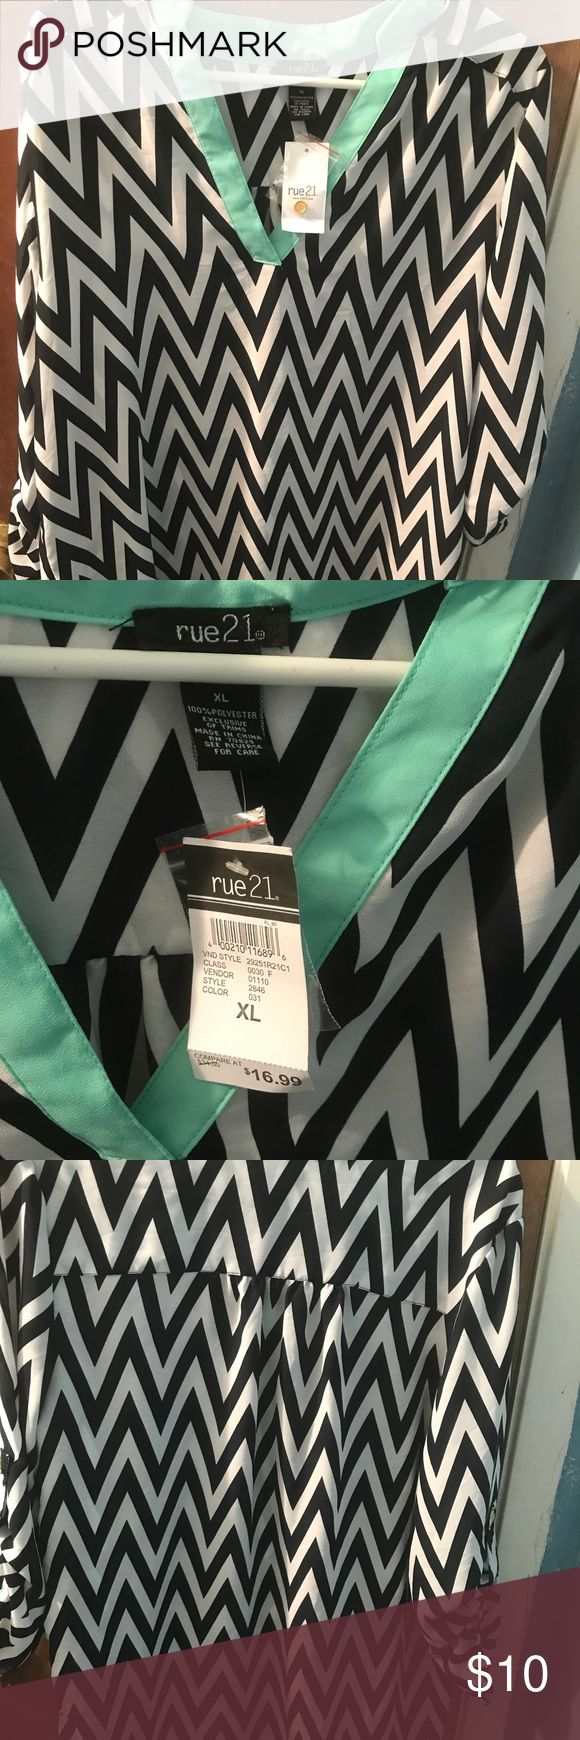 Rue 21 chevron shirt XL White, Navy, and turquoise blouse. XL Rue 21 Tops Blouses